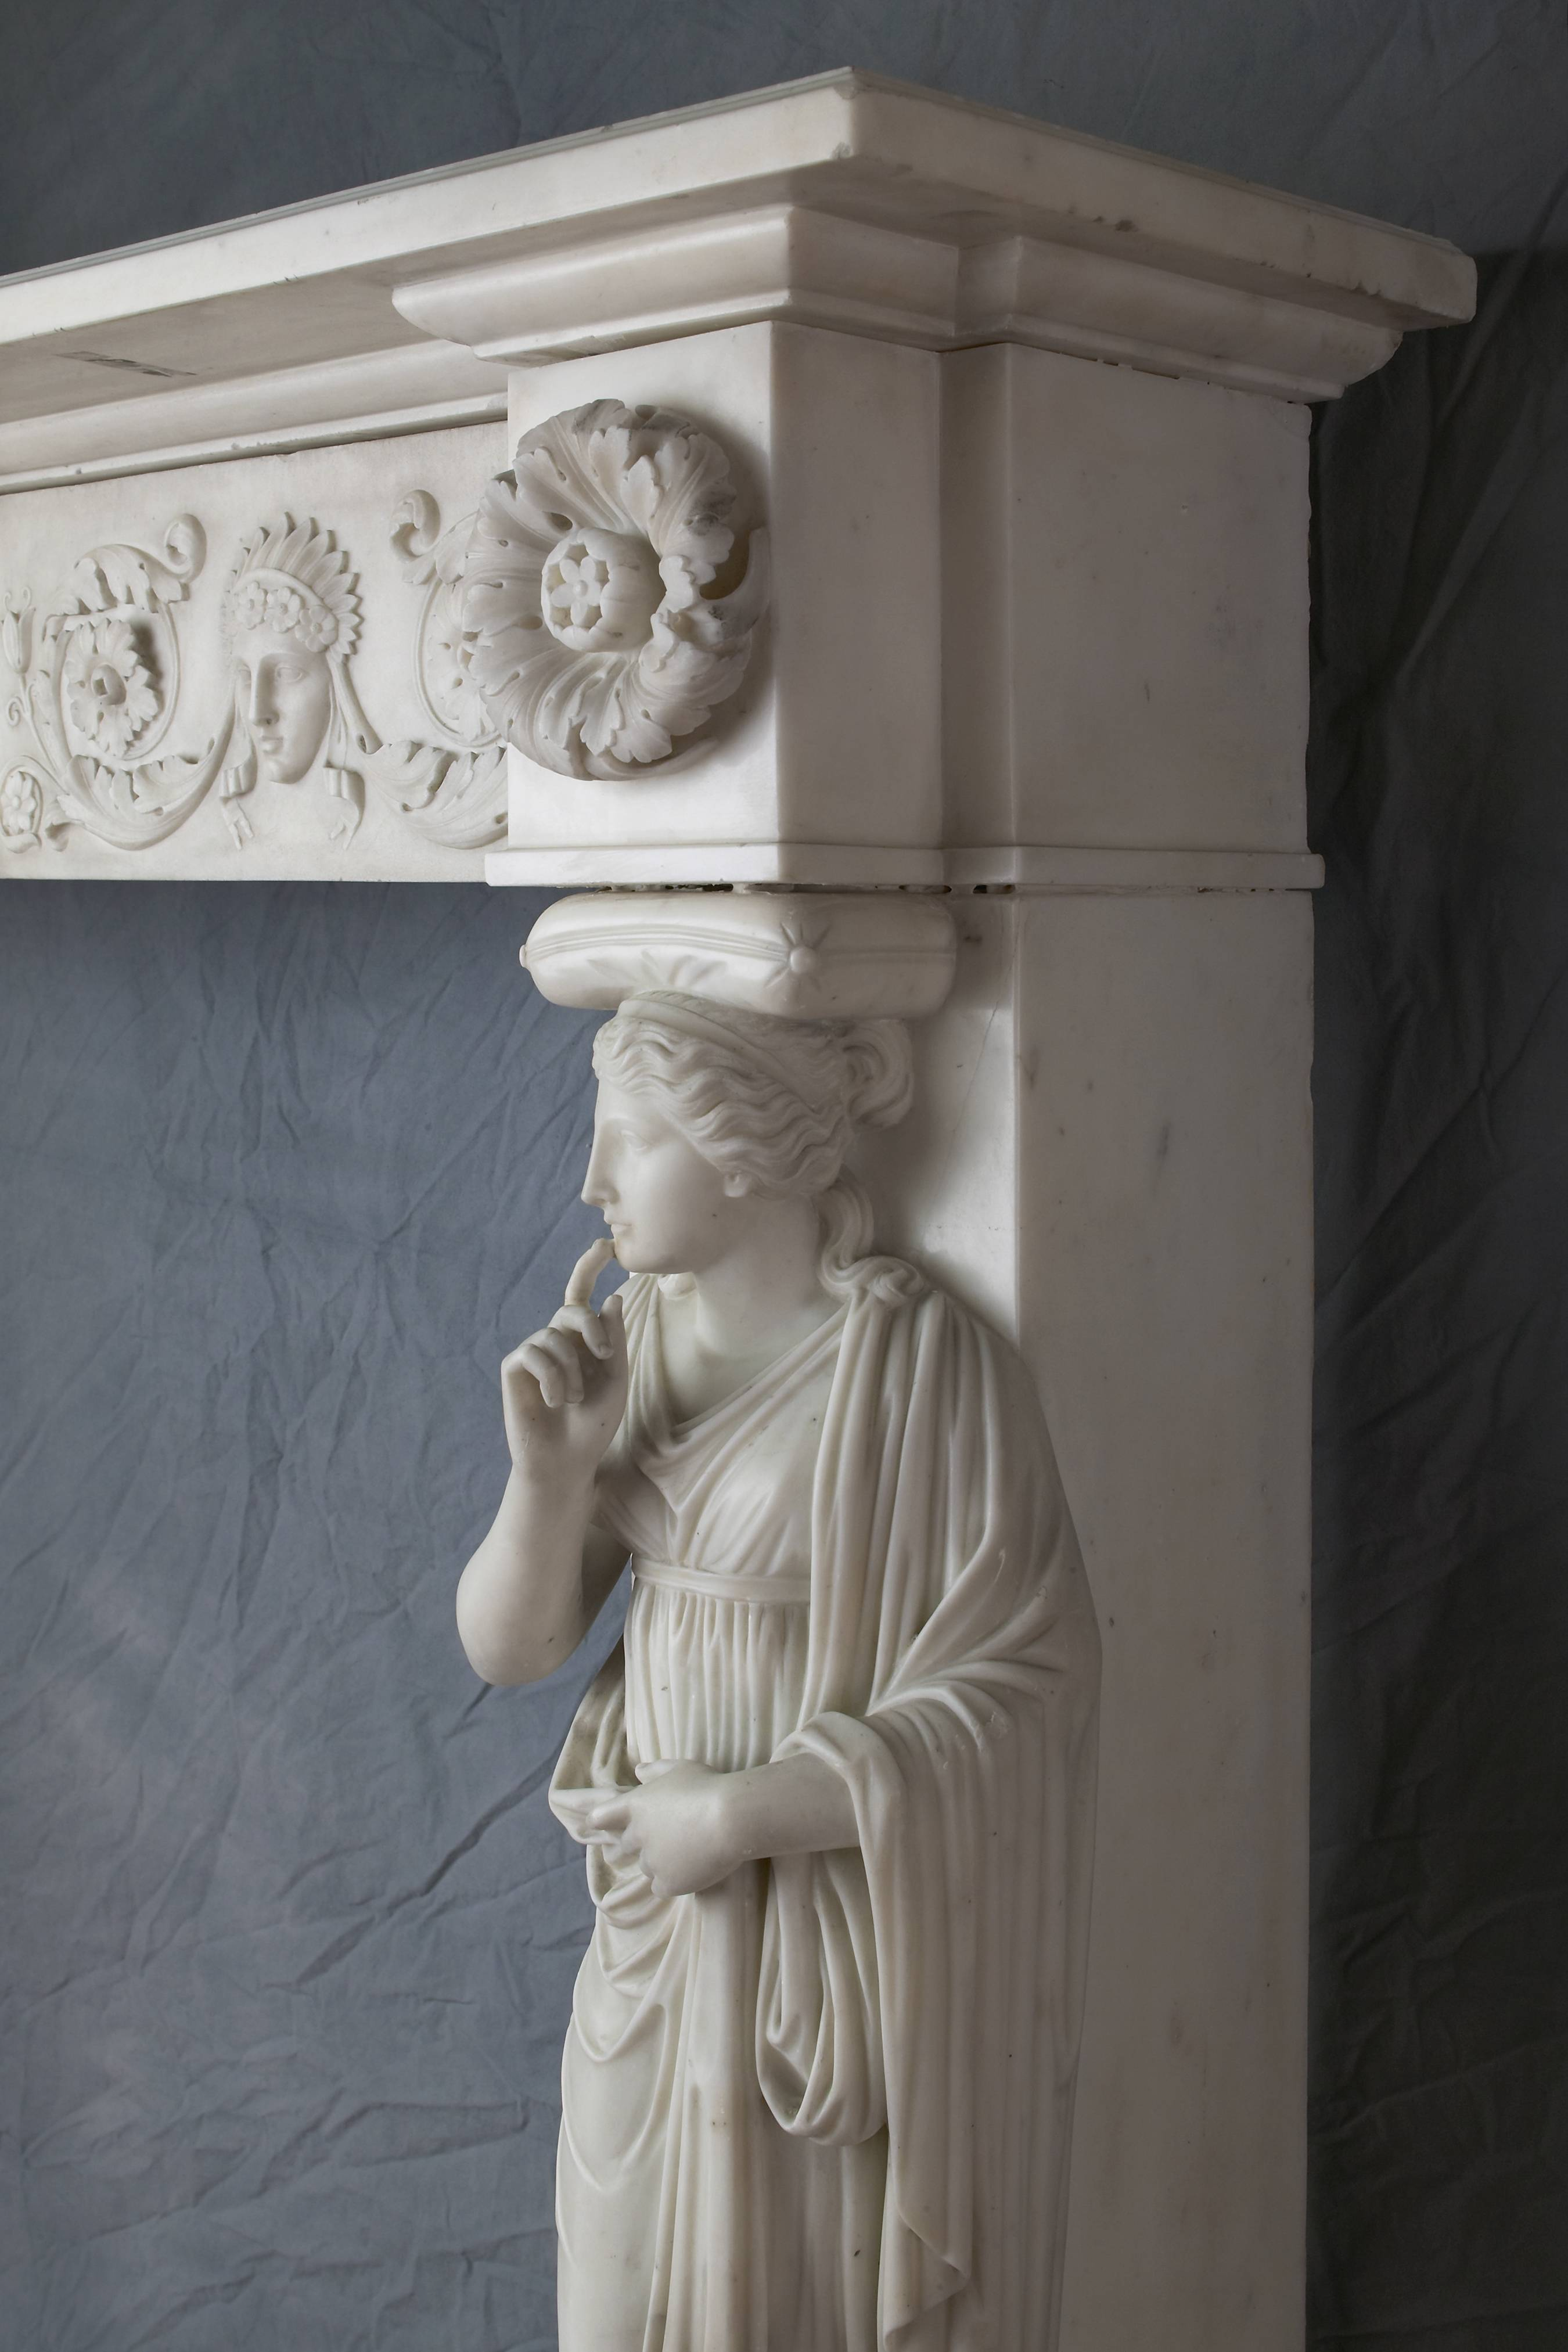 A caryatid on an 1805 marble mantelpiece. When Pribell spotted a dust-covered mantelpiece in the basement of a client's newly purchased home, it was the start of a long relationship.